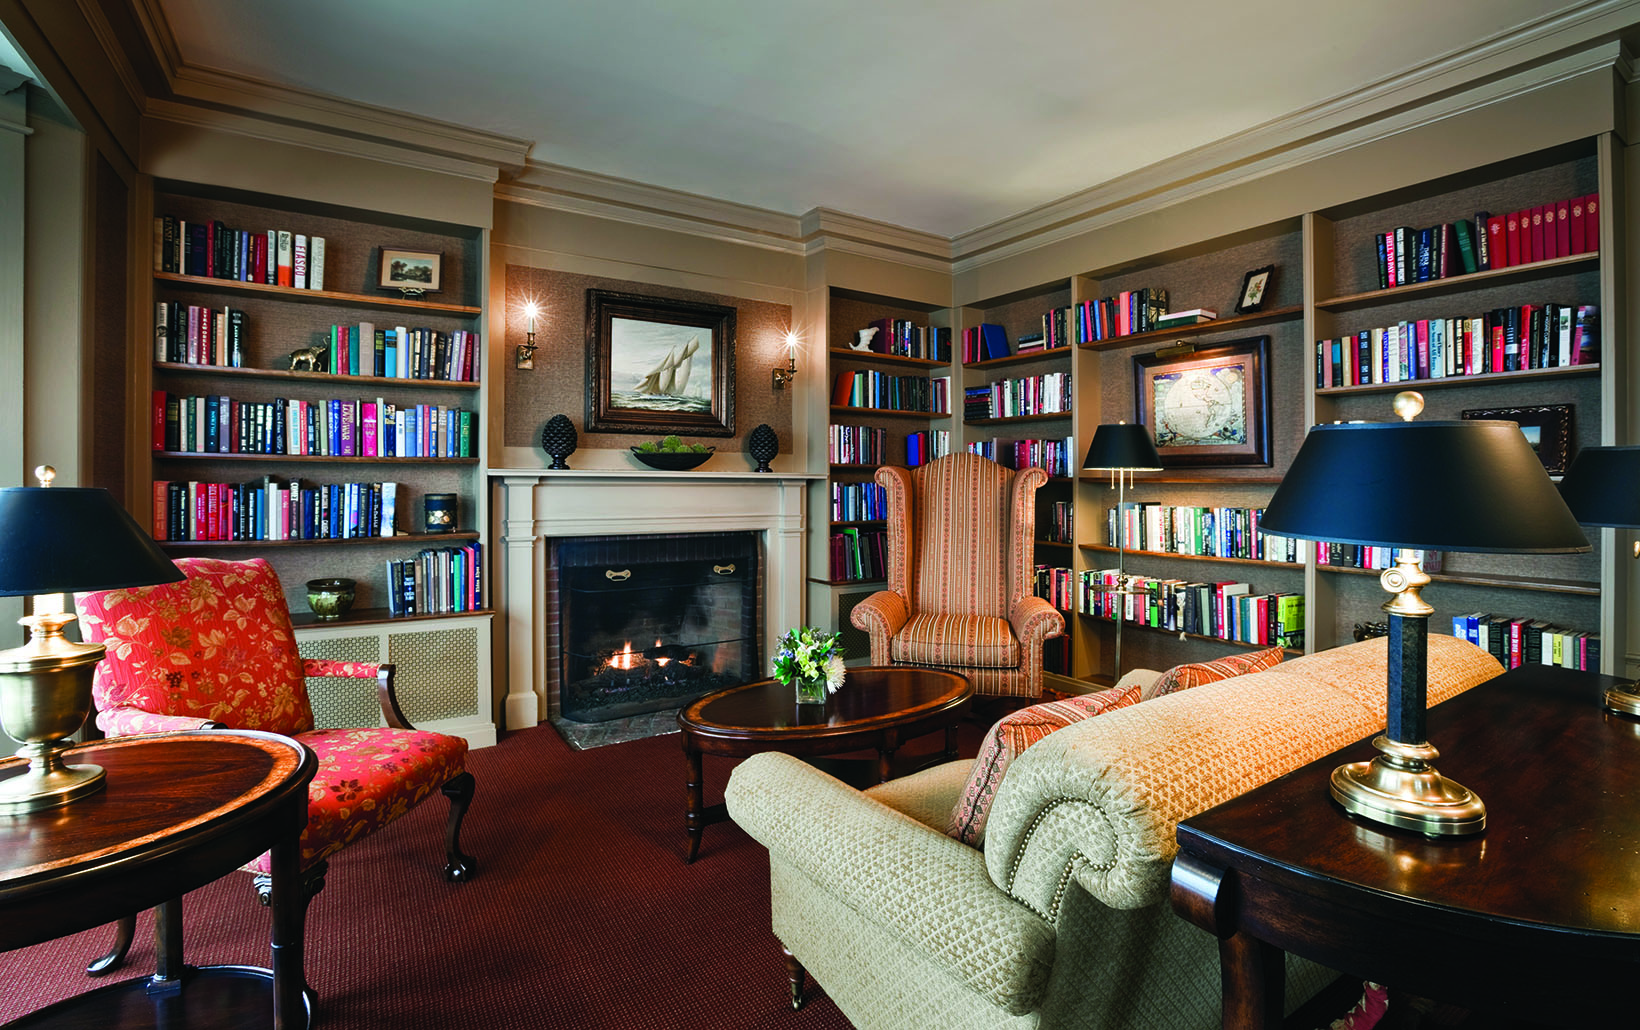 The historic library at the Mountain View Grand Resort